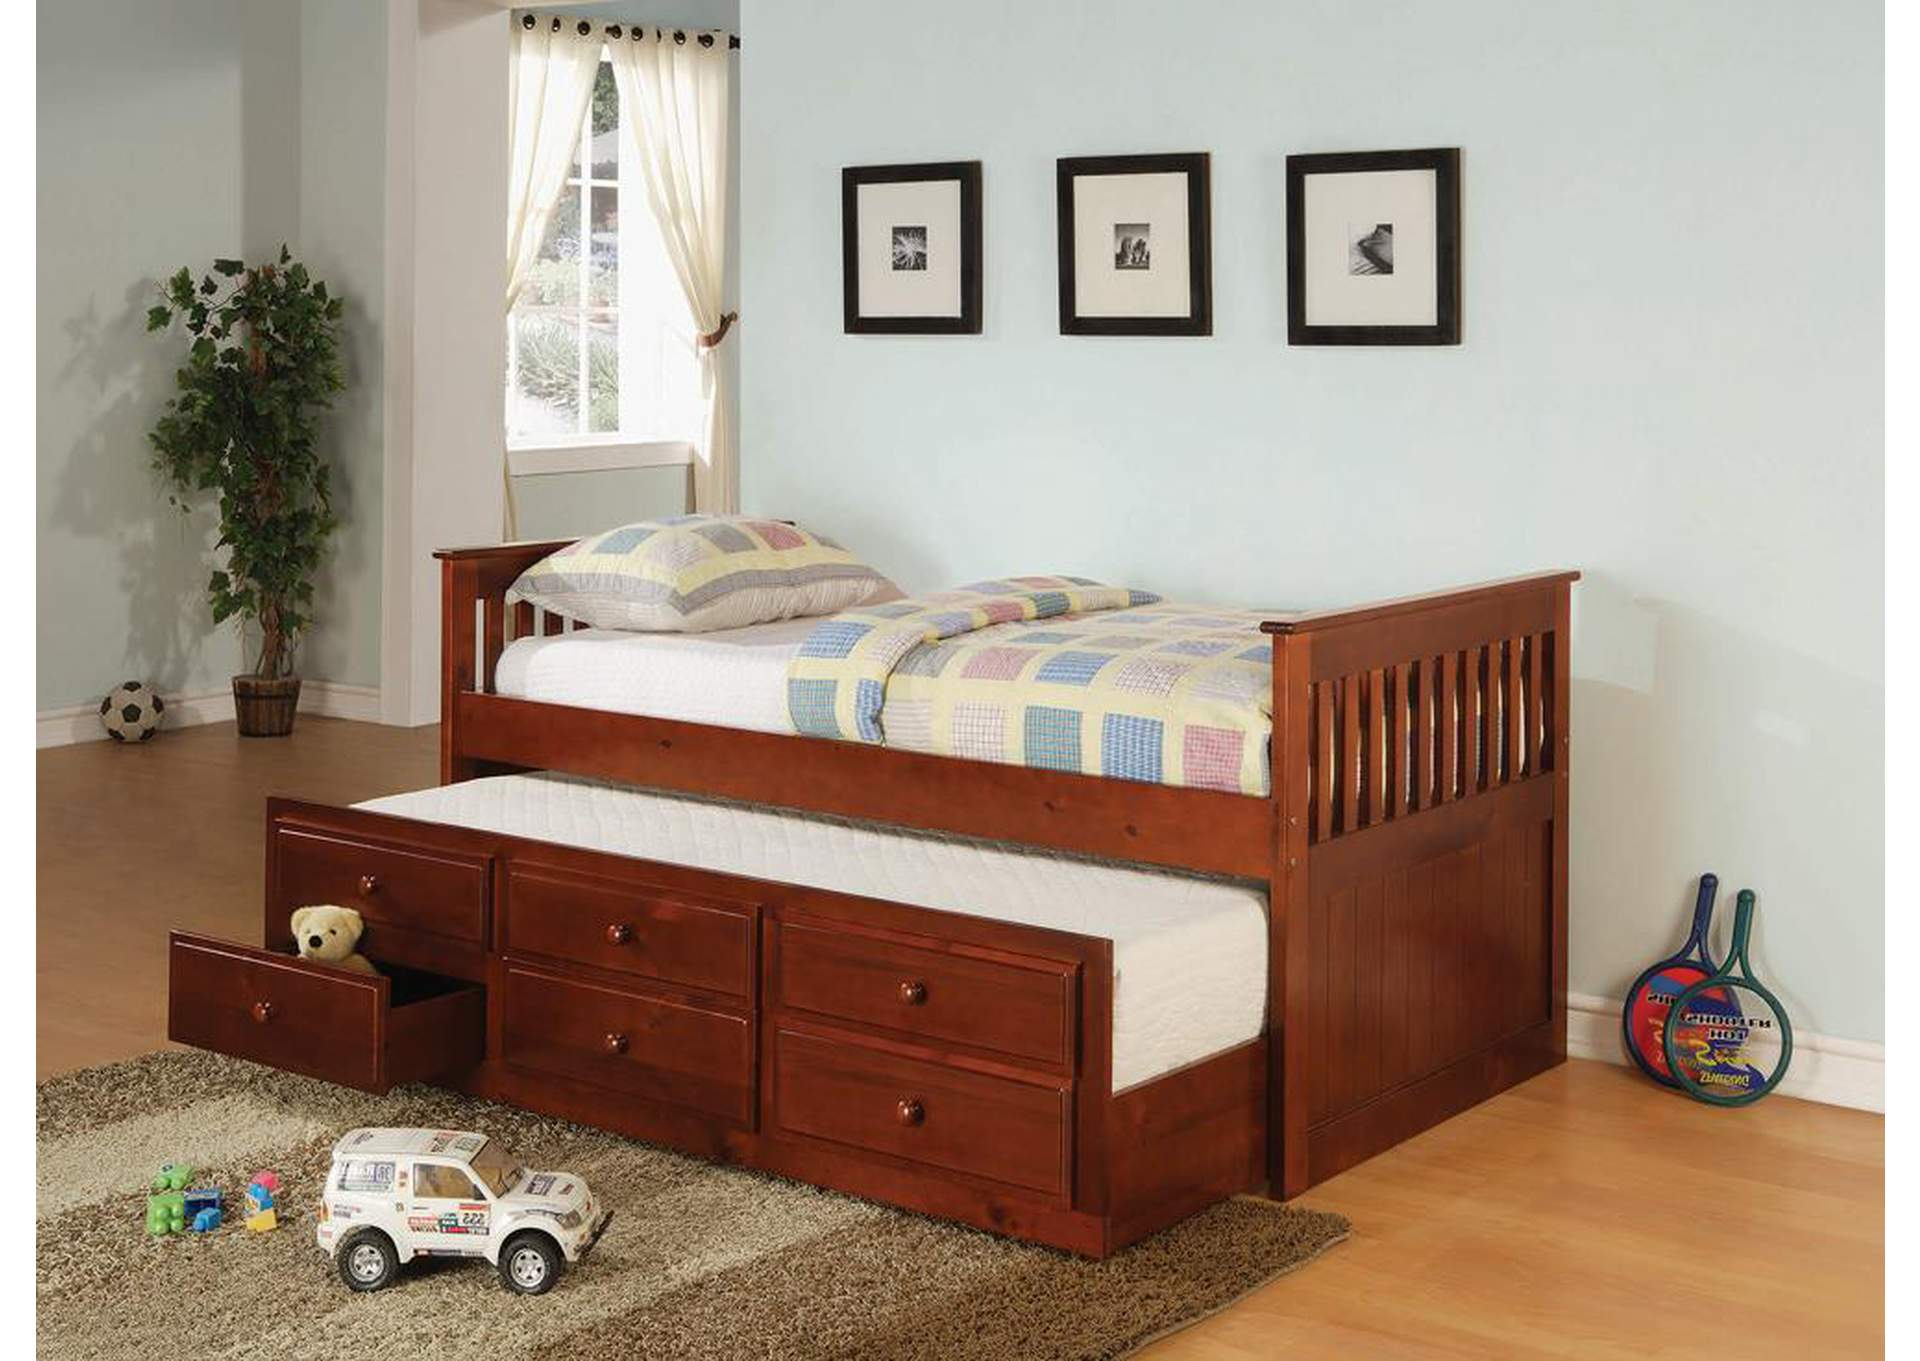 What Are the Measurements of a Daybed Mattress? Home Guides